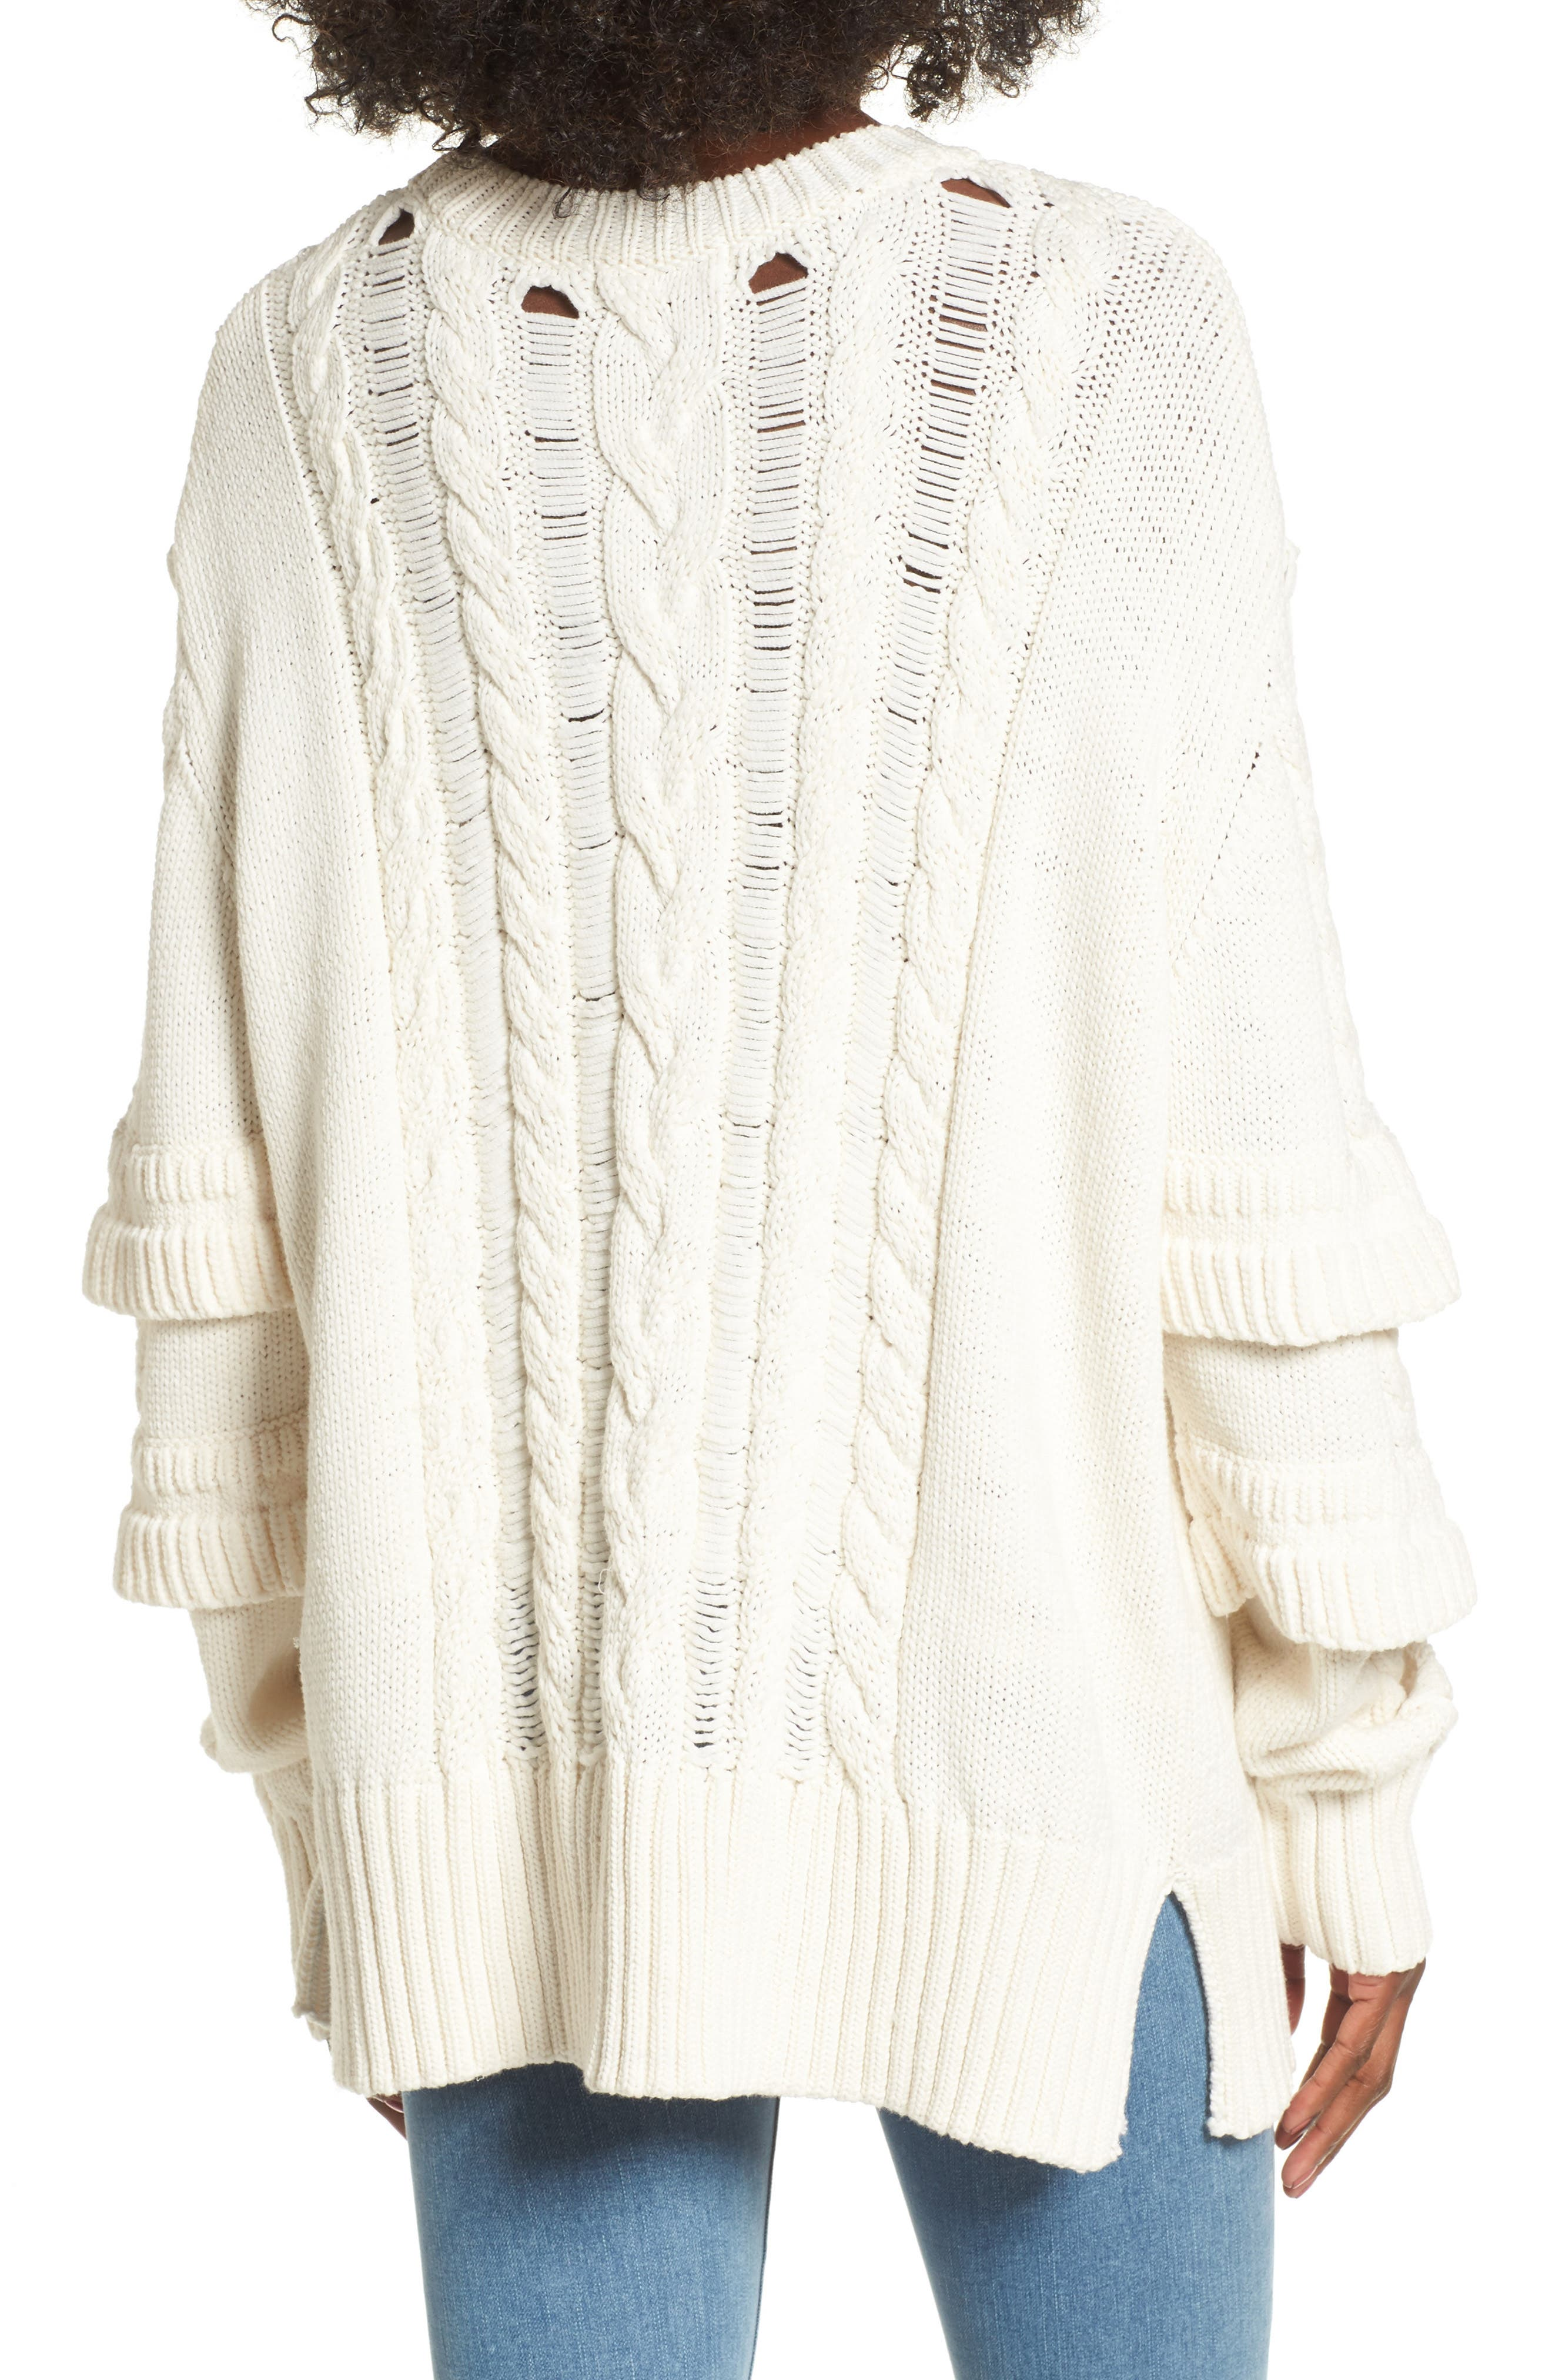 Ruffle Sleeve Cable Knit Sweater,                             Alternate thumbnail 2, color,                             Just For Kicks/ Ivory